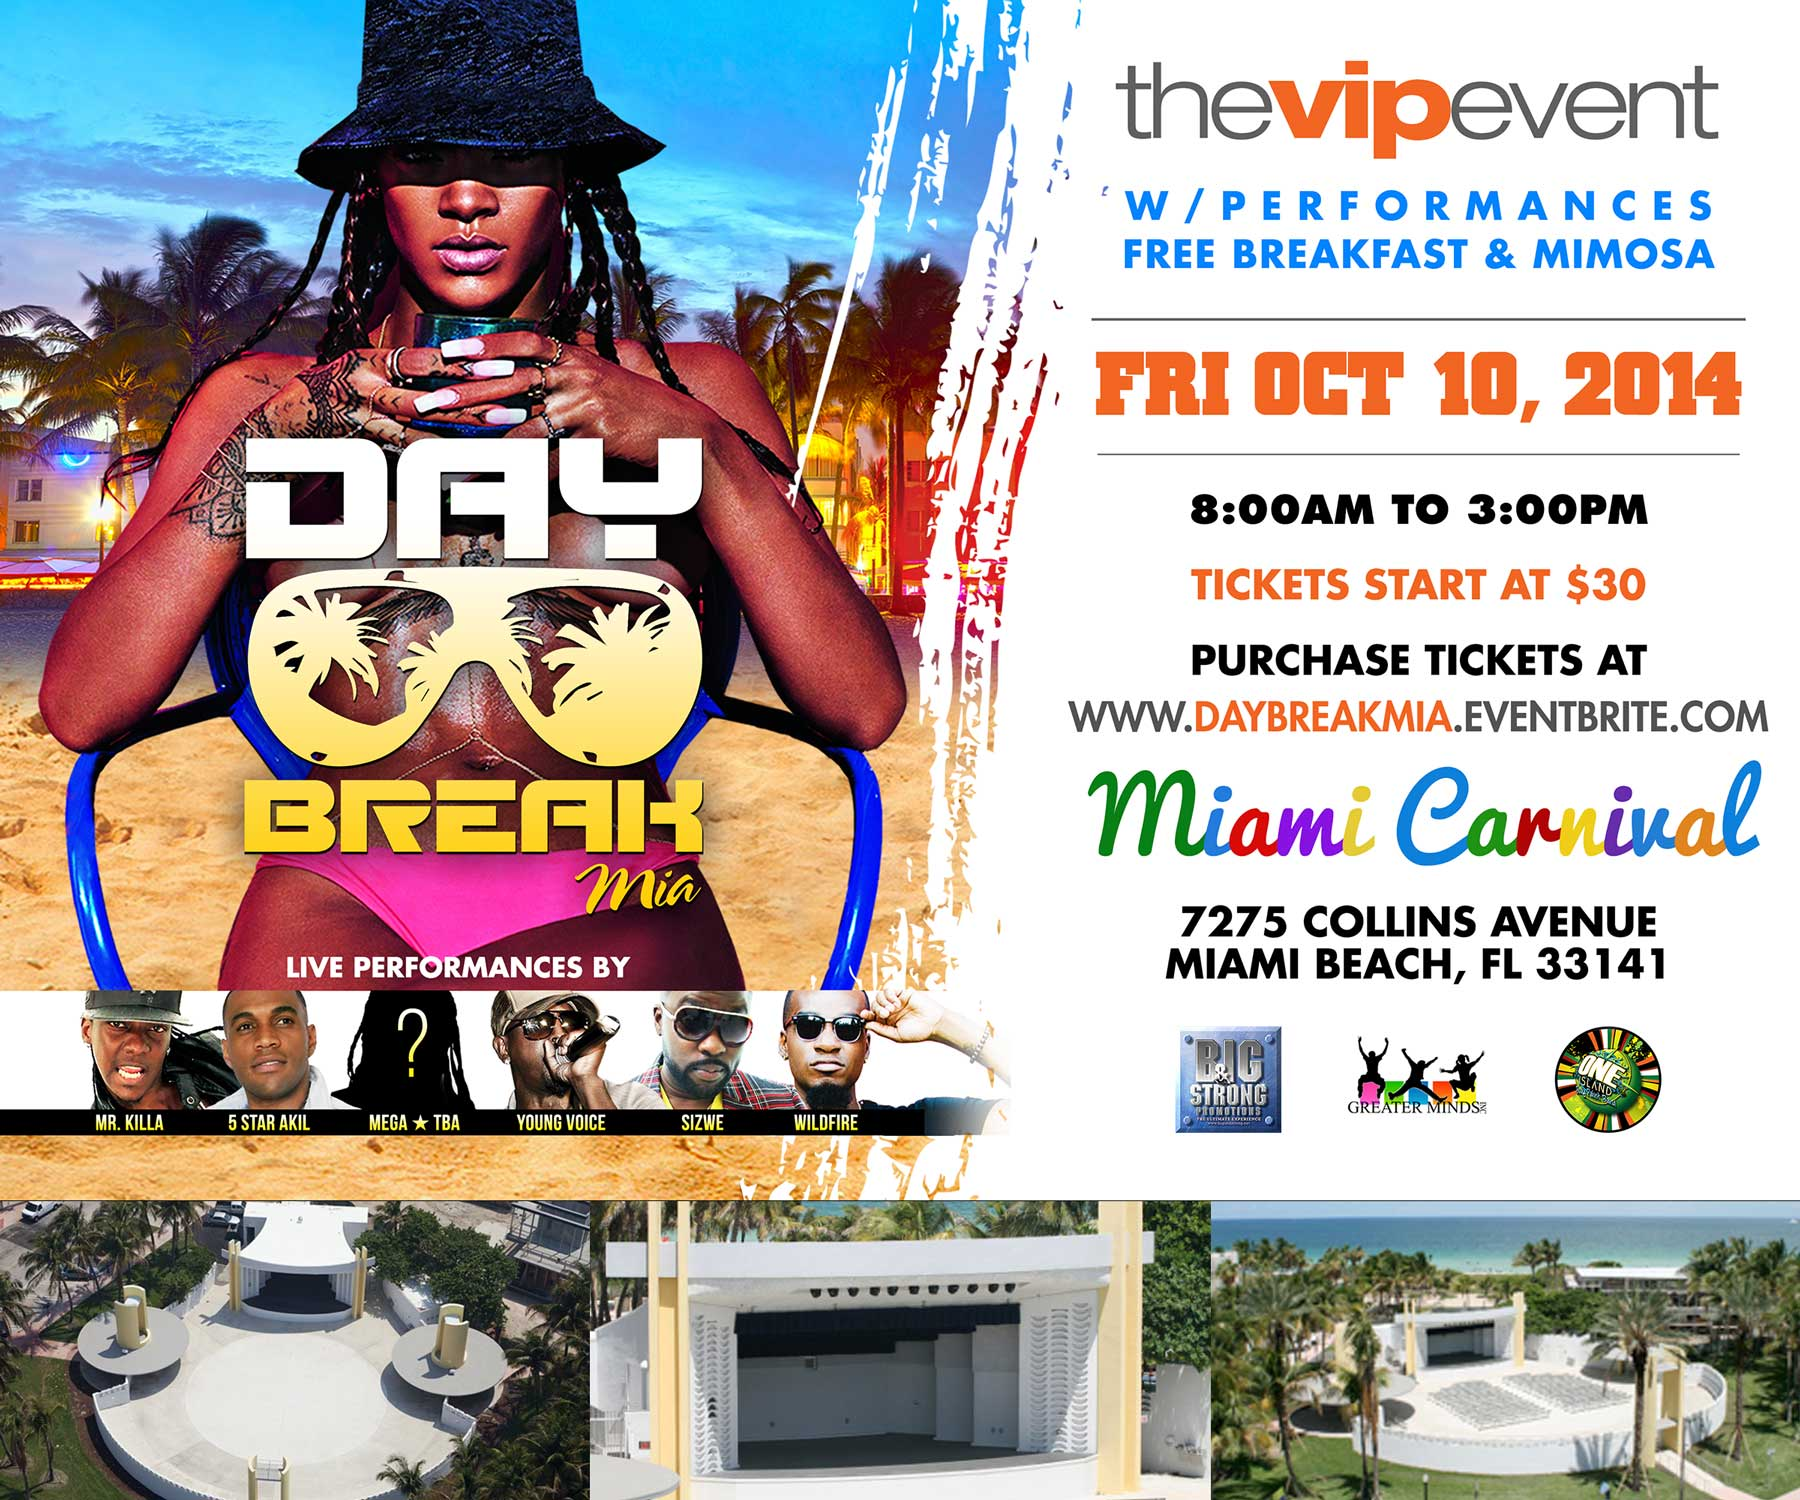 Day Break Mia Artist line up